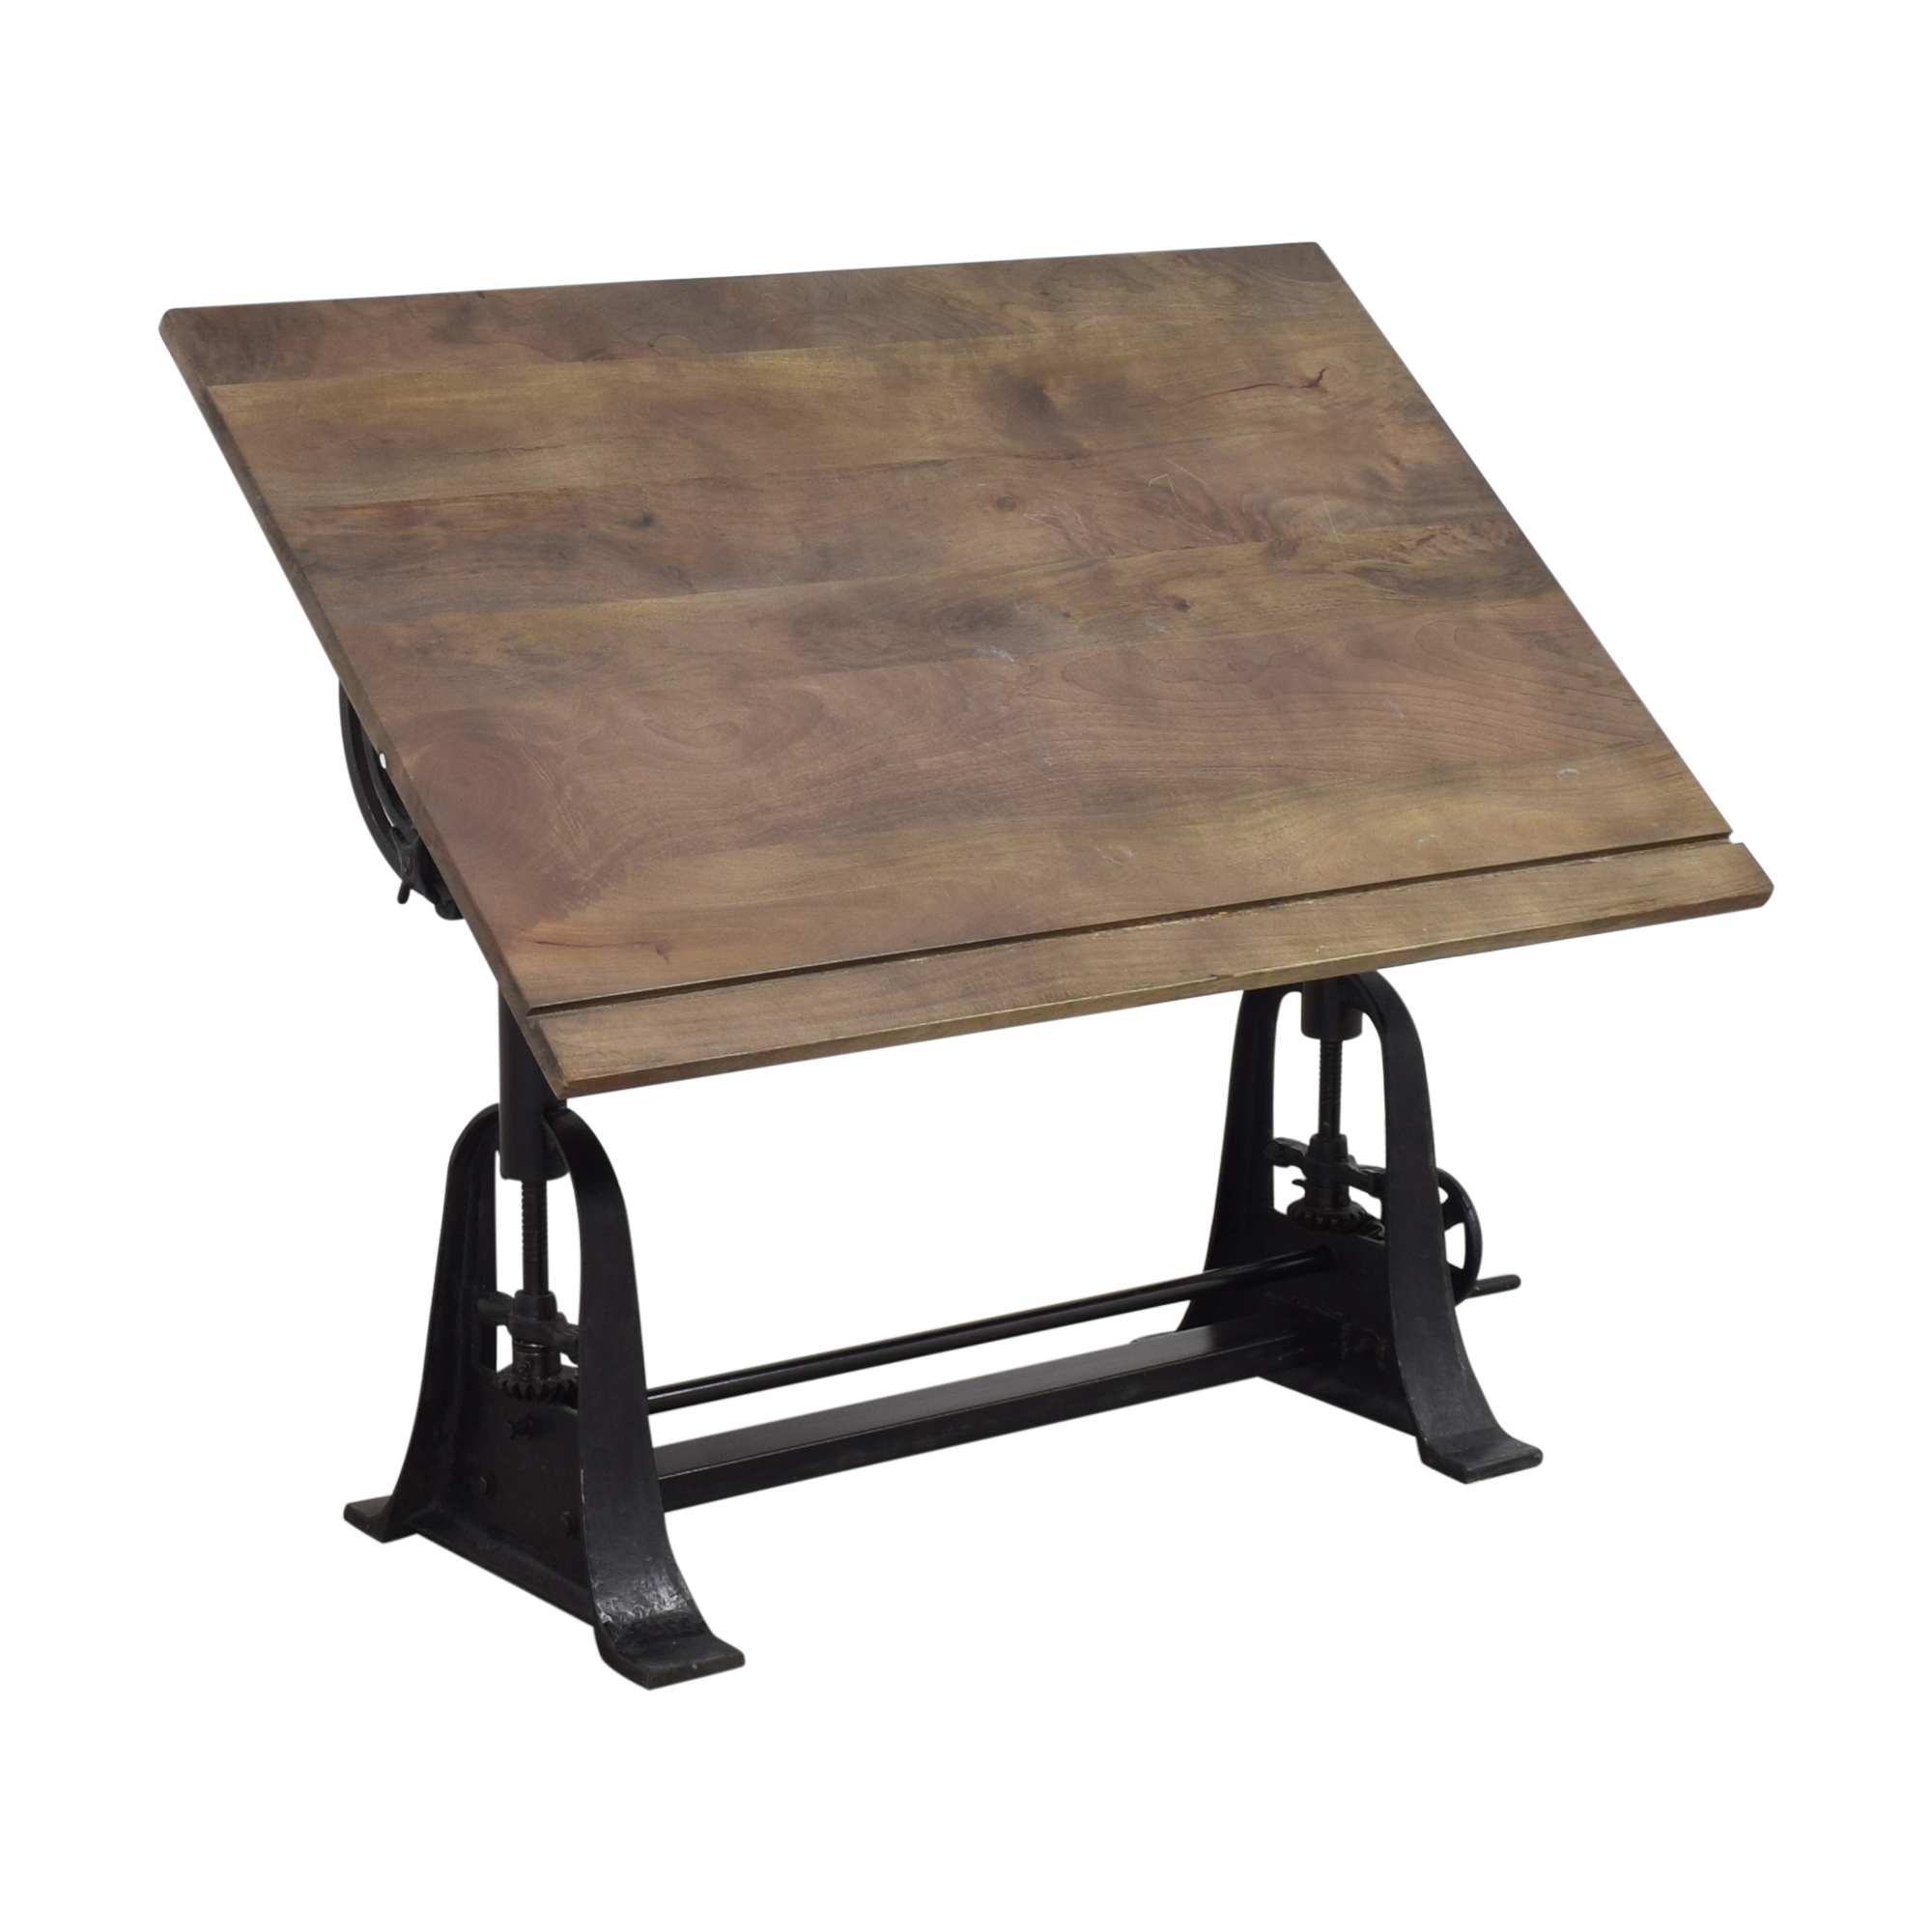 Restoration Hardware Restoration Hardware 1910 American Trestle Drafting Table for sale